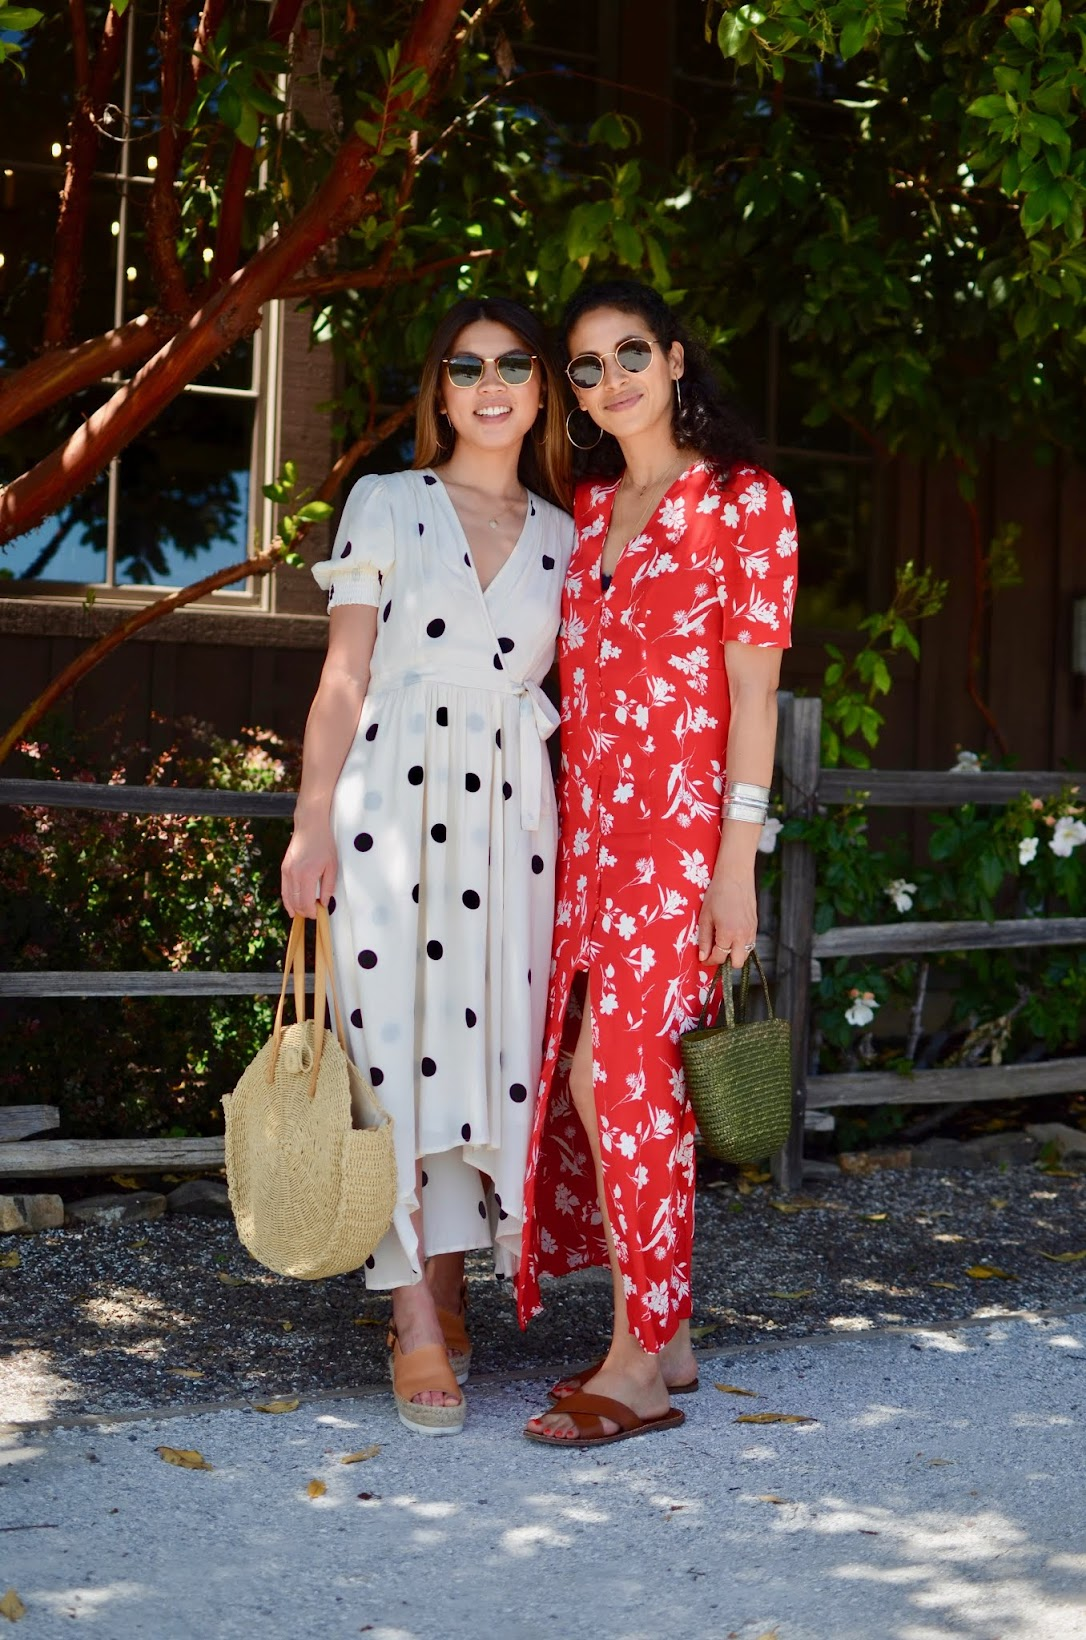 Healdsburg wine weekend, wine country get away, red maxi summer dress, summer prints in wine country, straw bag, Dutcher Crossing winery